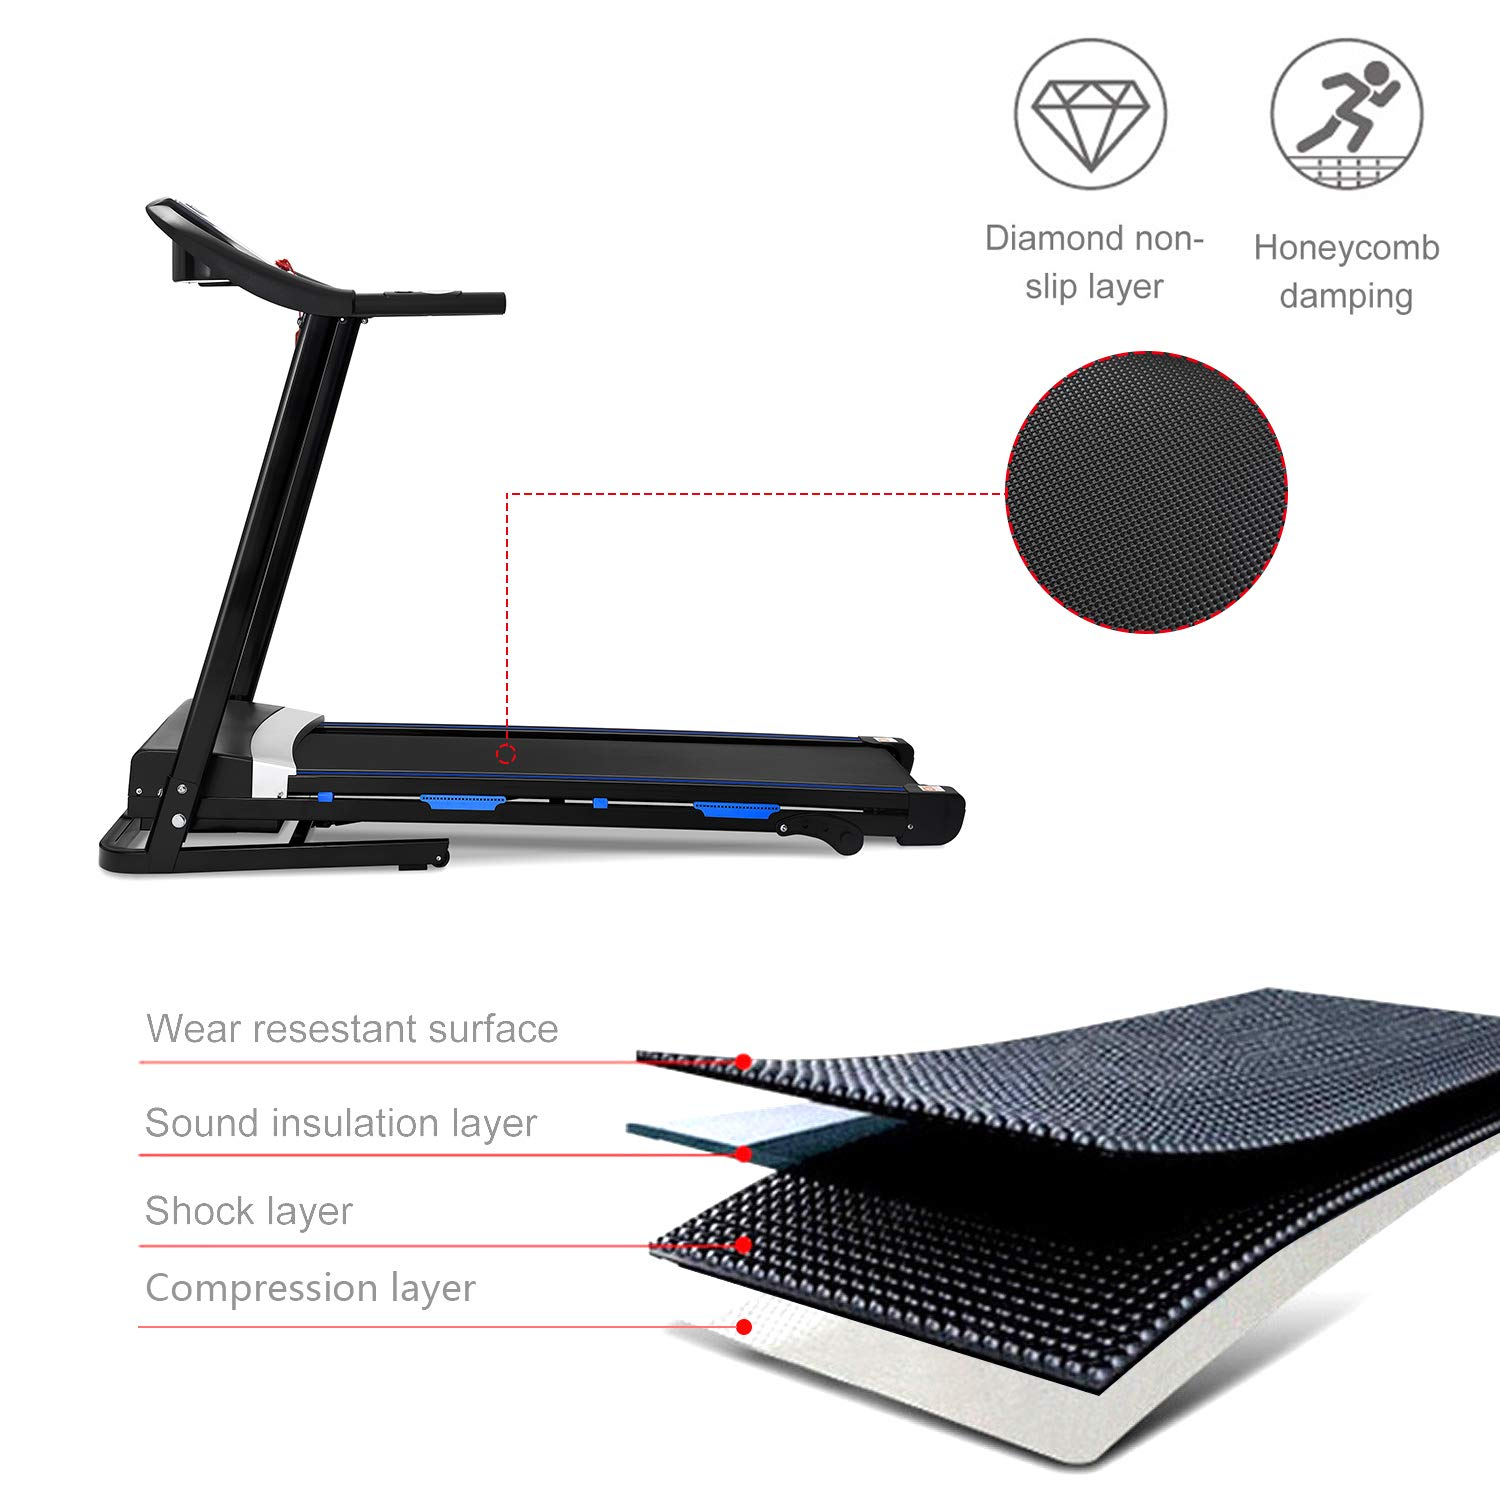 Rhomtree Folding Treadmill Motorized Running Jogging Exercise Machine with Incline Large Heavy Duty Health Fitness Equipment Easy Assembly